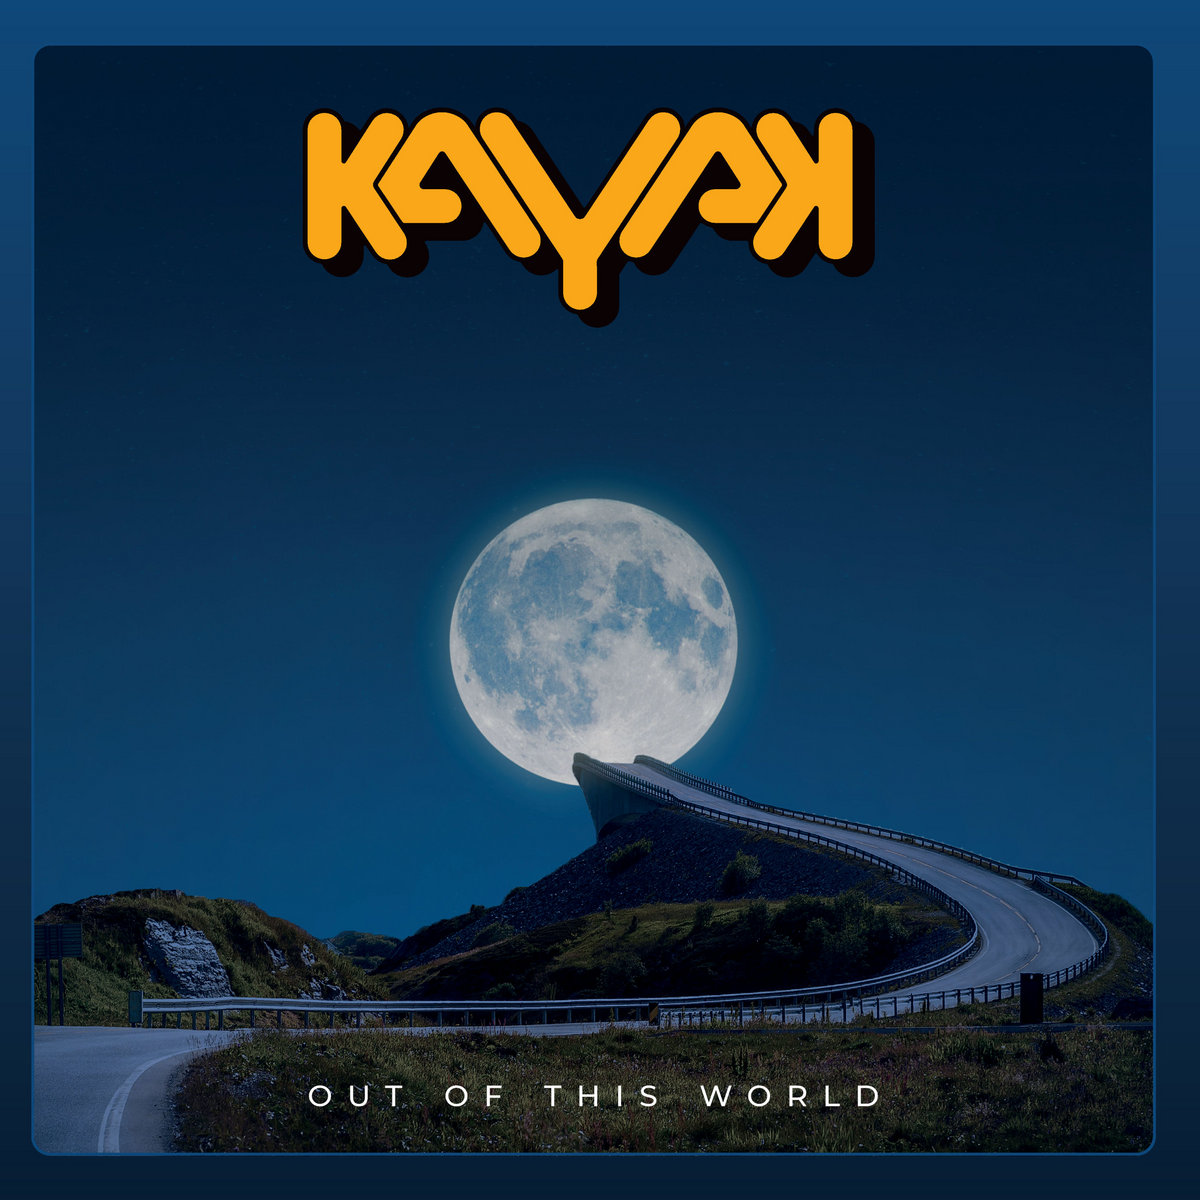 Out Of This World Kayak Album Cover Artwork